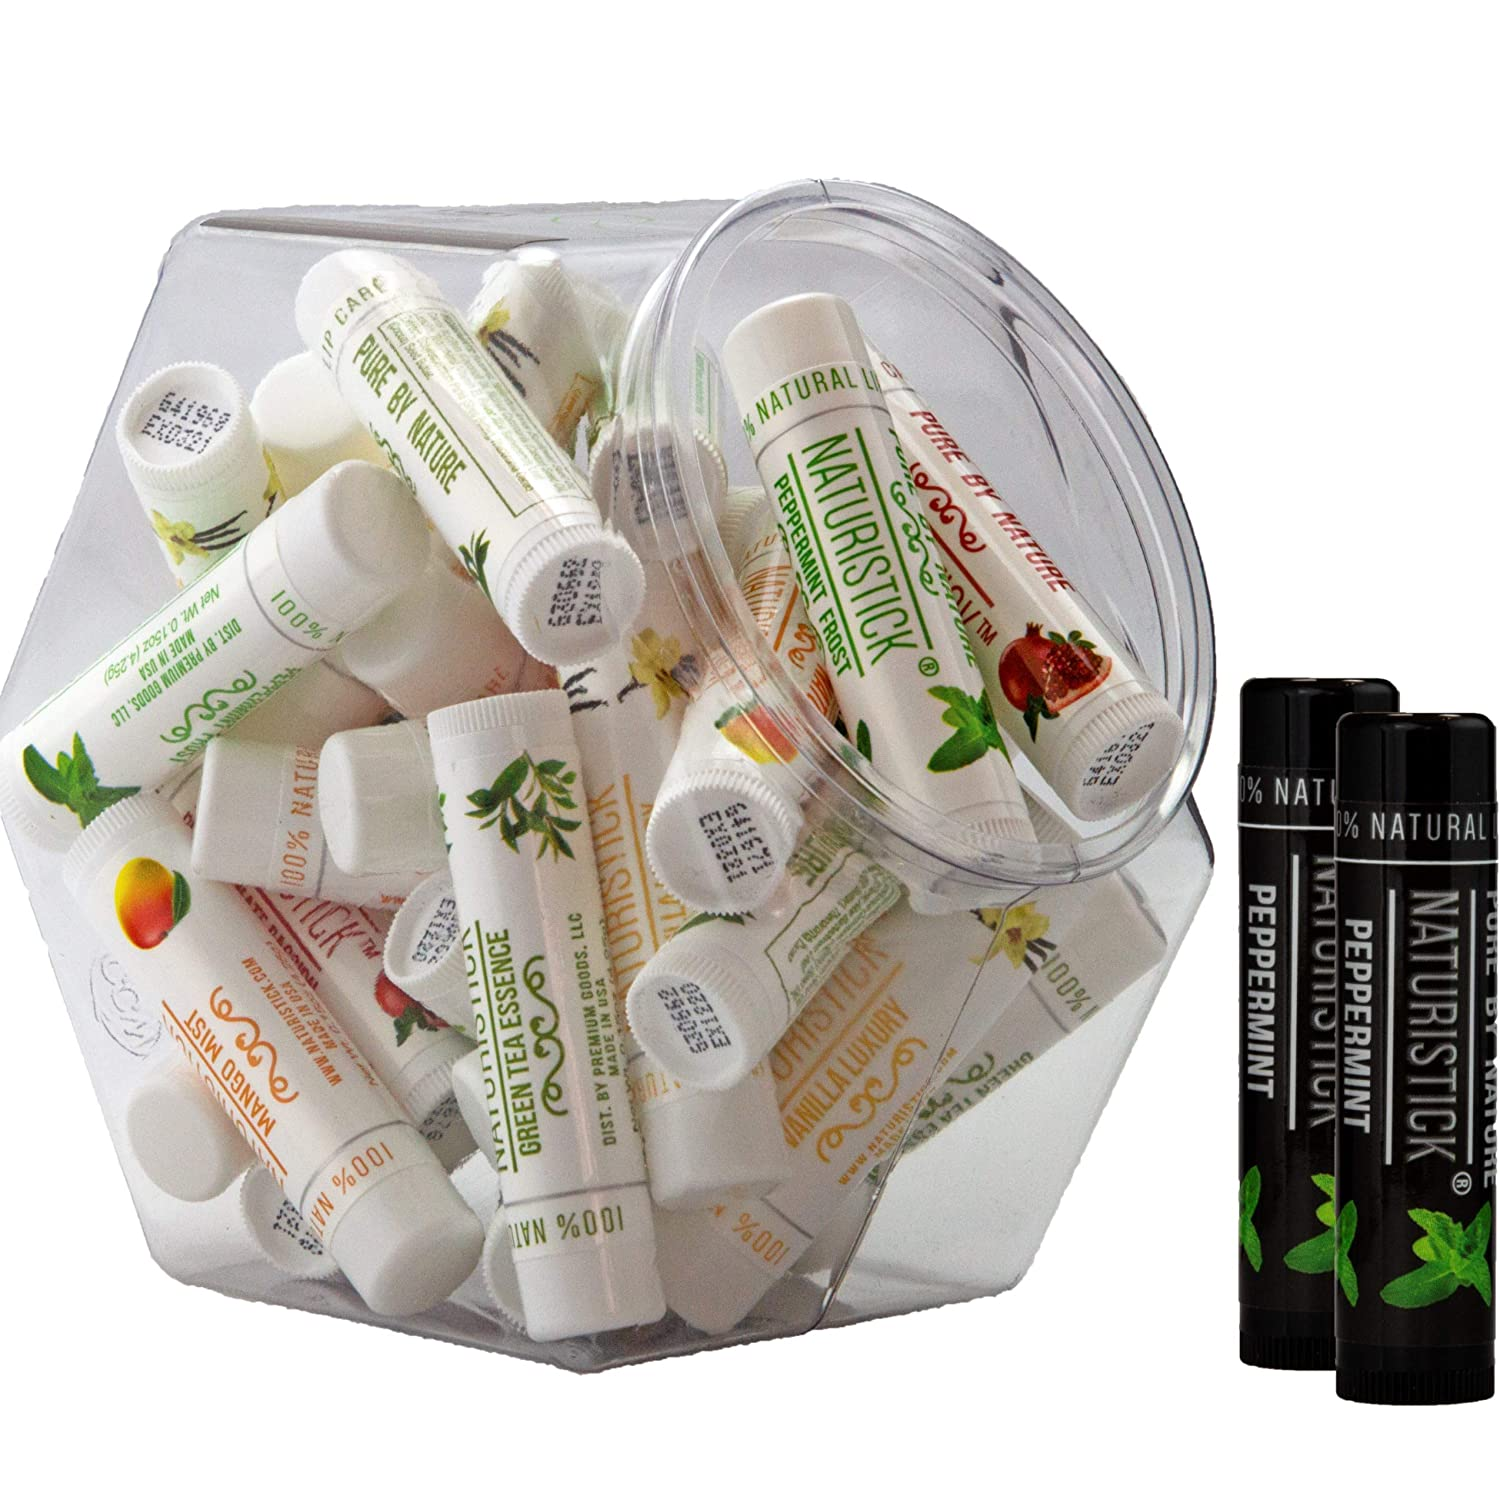 32-Pack Lip Balm in Bulk by Naturistick. Assorted Flavors. 100% Natural Ingredients. Includes Mini Display Fishbowl. Best Beeswax Chapstick for Dry, Chapped Lips. Made in USA